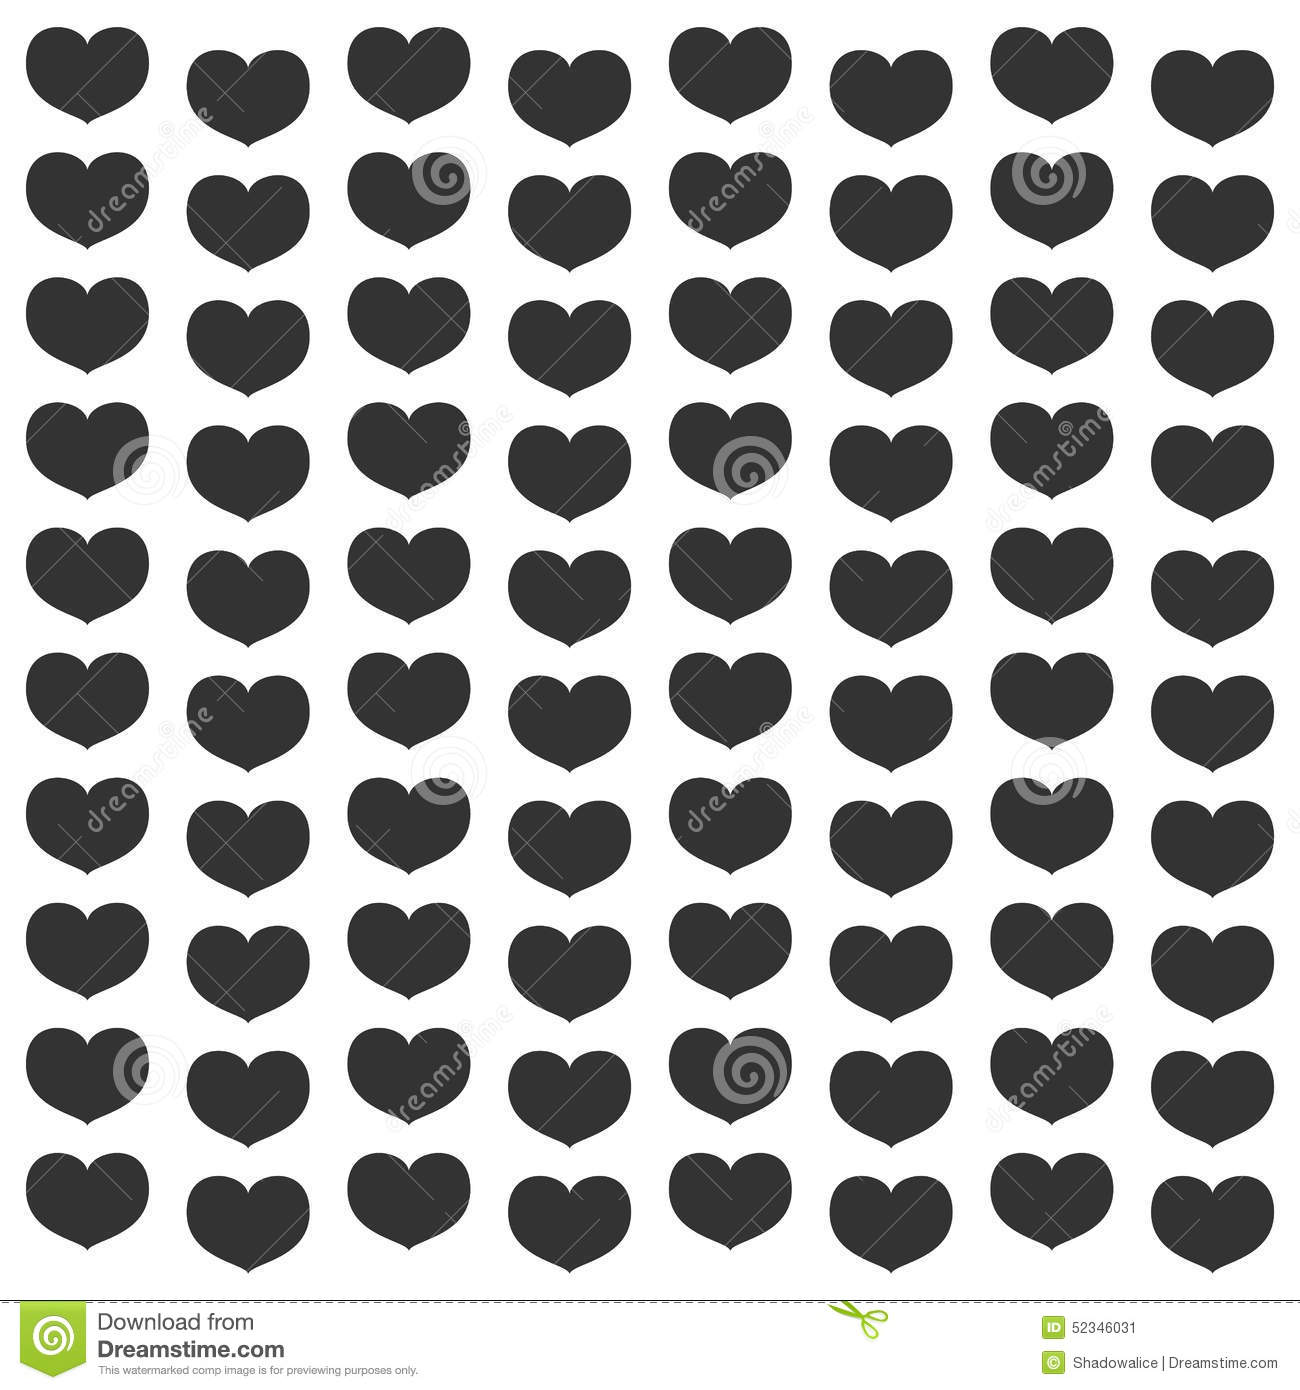 Black Heart Wallpaper Great For Any Use Vector Eps10 Stock Vector Illustration Of Cute Decorative 52346031